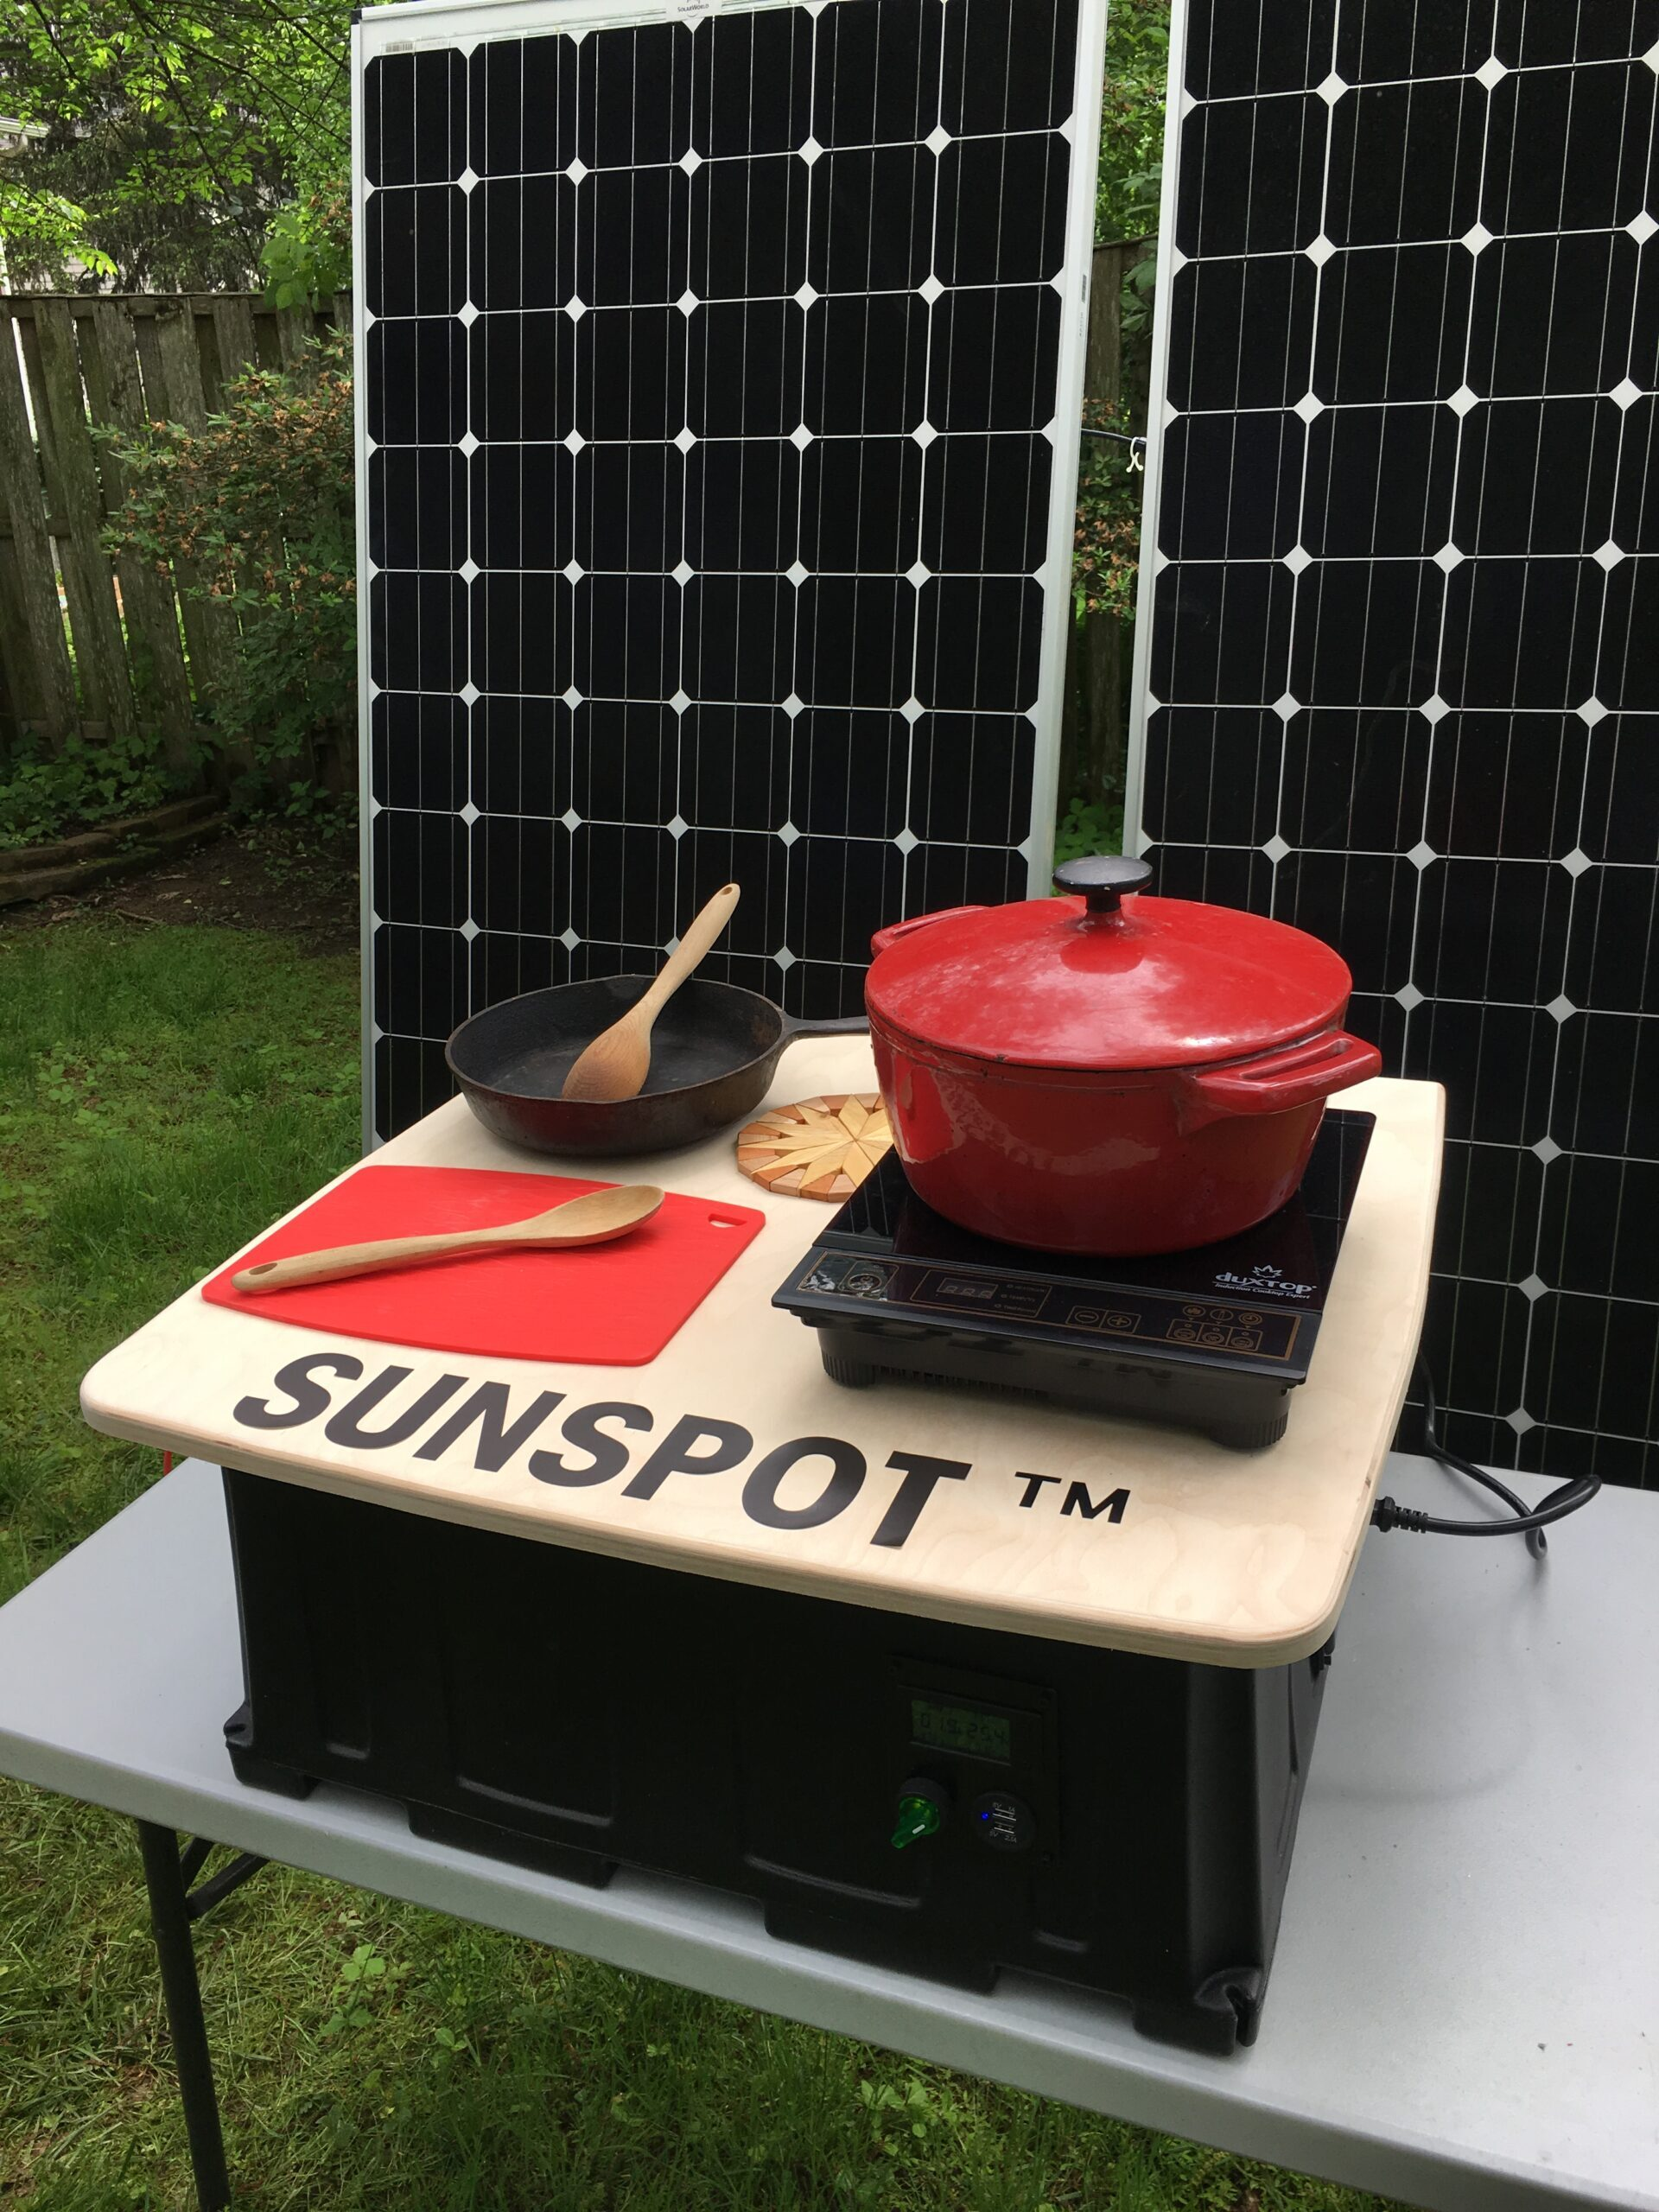 SUNSPOT system is a cost-effective replacement for biomass cookstoves